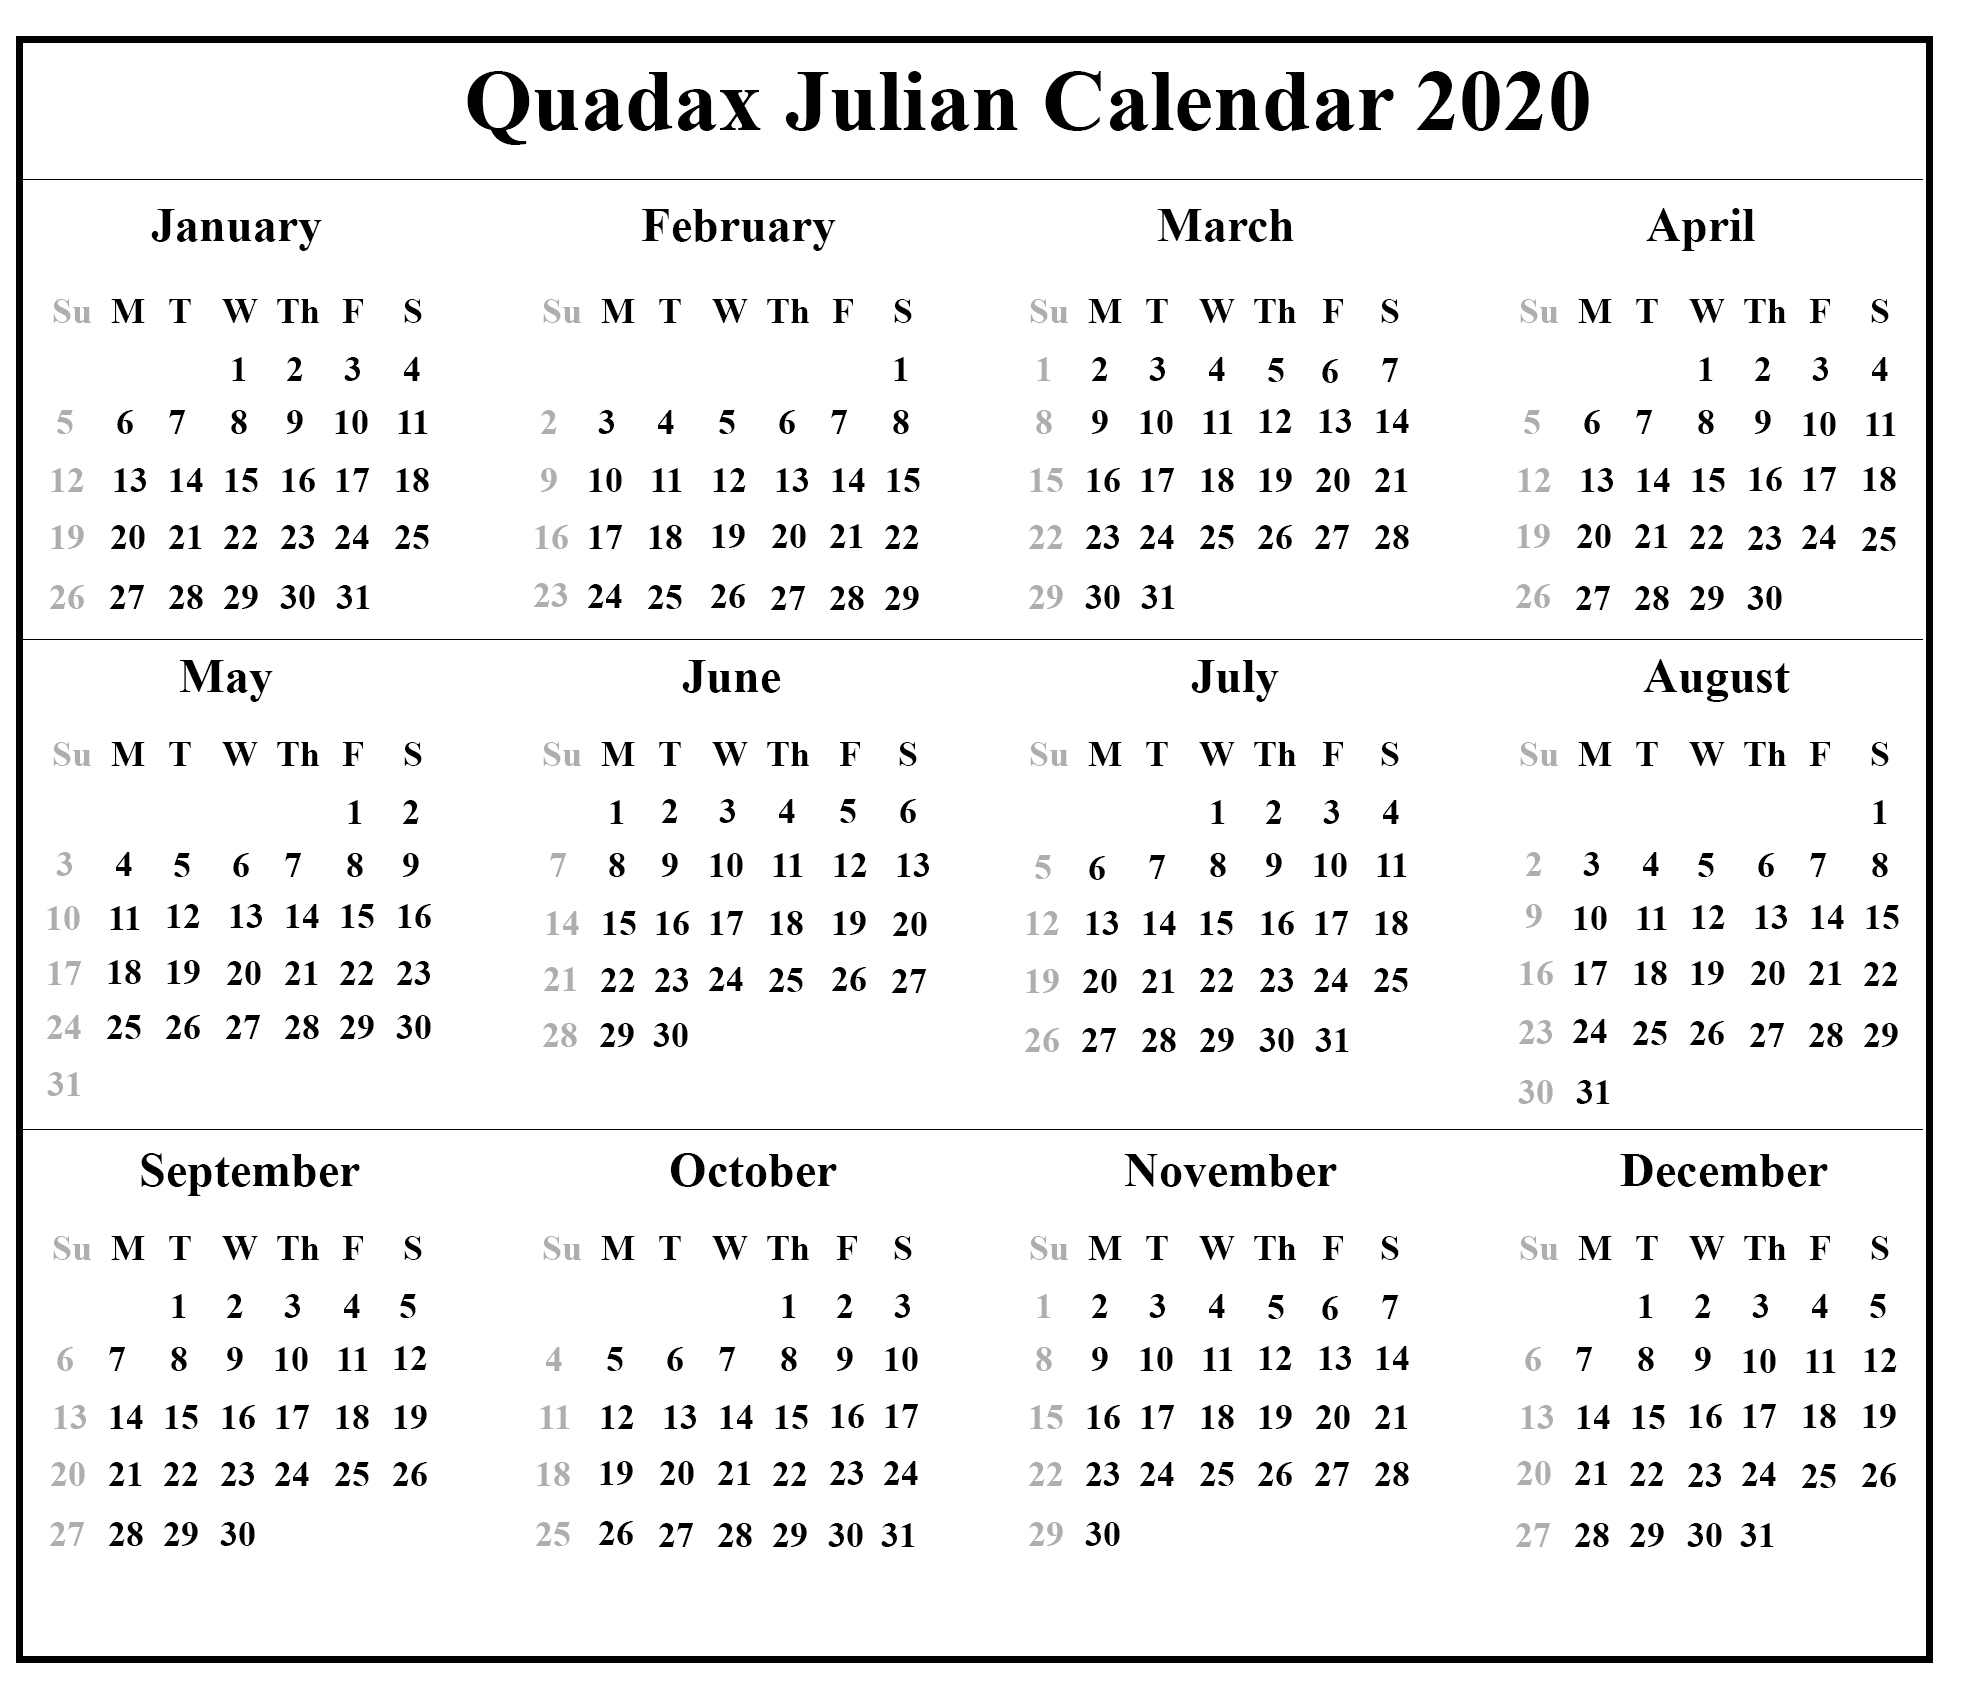 Julian Calendar 2020 Pdf Quadax | Example Calendar Printable with Quadax Julian Date Calendar 2020